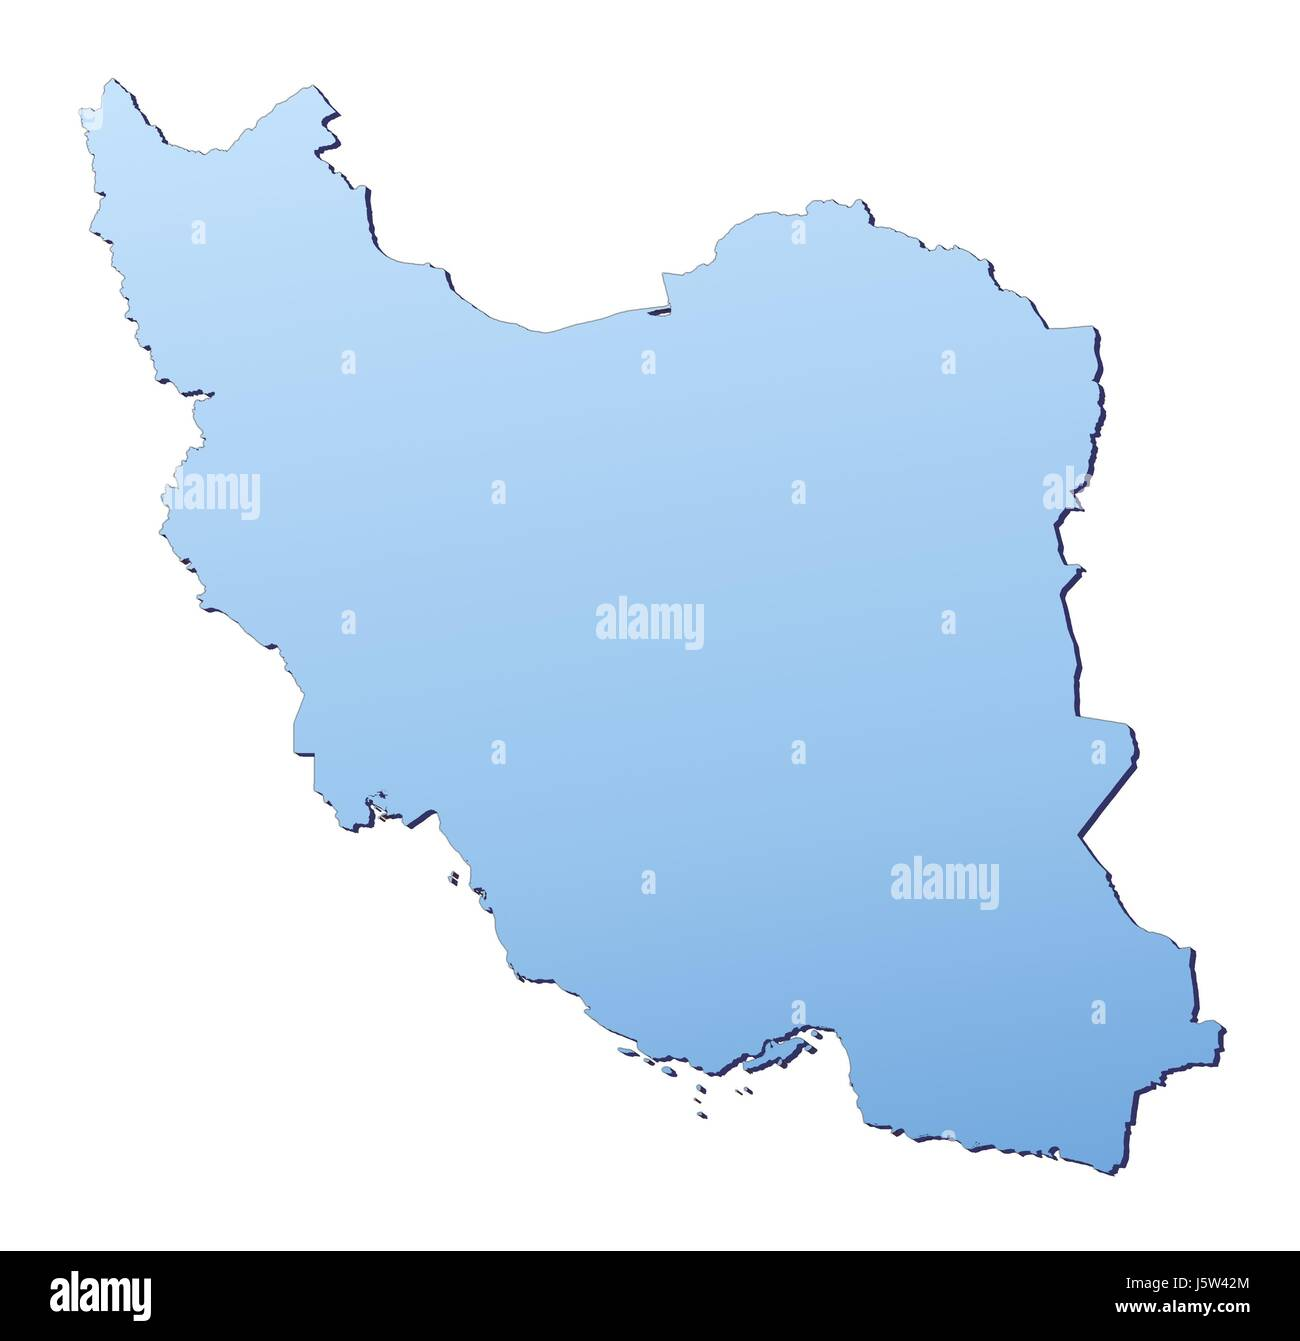 Blue isolated outline gradient iran map atlas map of the world stock blue isolated outline gradient iran map atlas map of the world backdrop gumiabroncs Choice Image